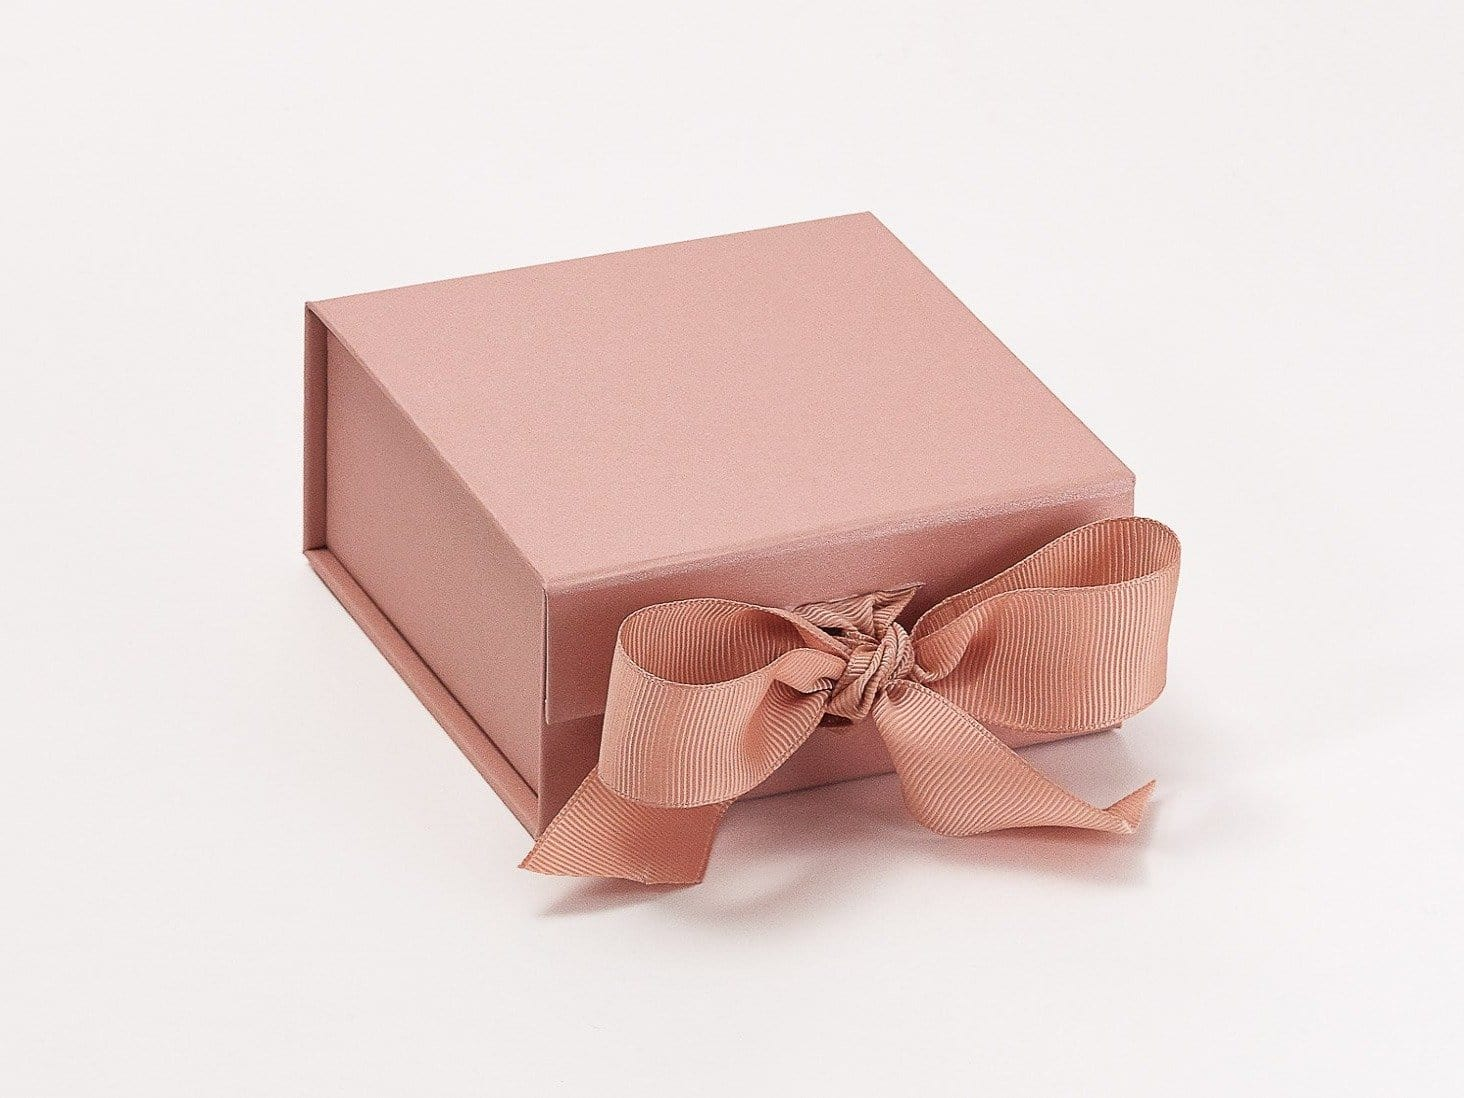 Sample Rose Gold Small Gift Box With Fixed Grosgrain Ribbon